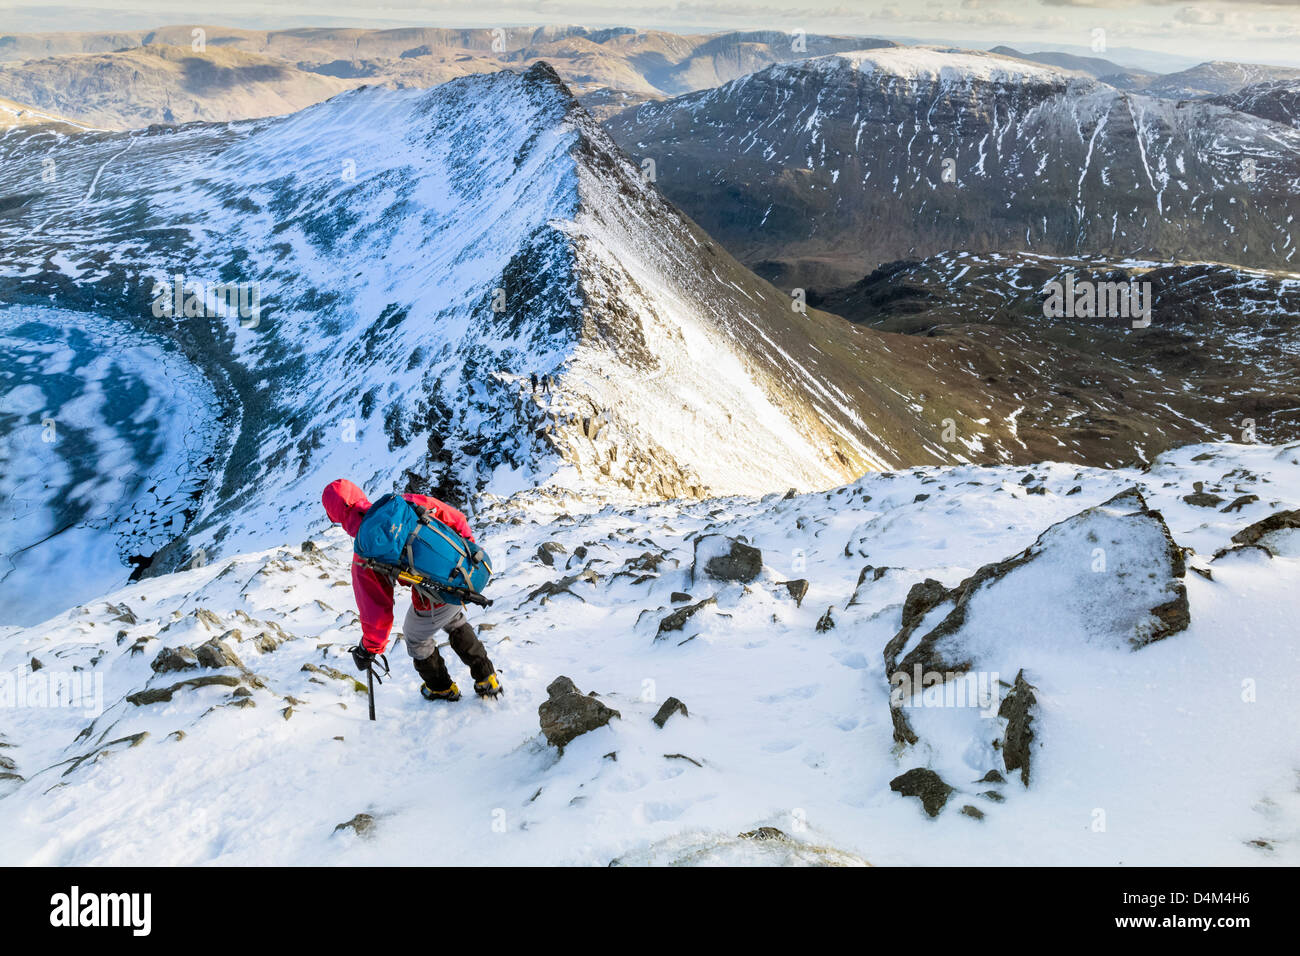 A hiker descending Helvellyn towards Striding Edge and Red Tarn in the Lake District. - Stock Image